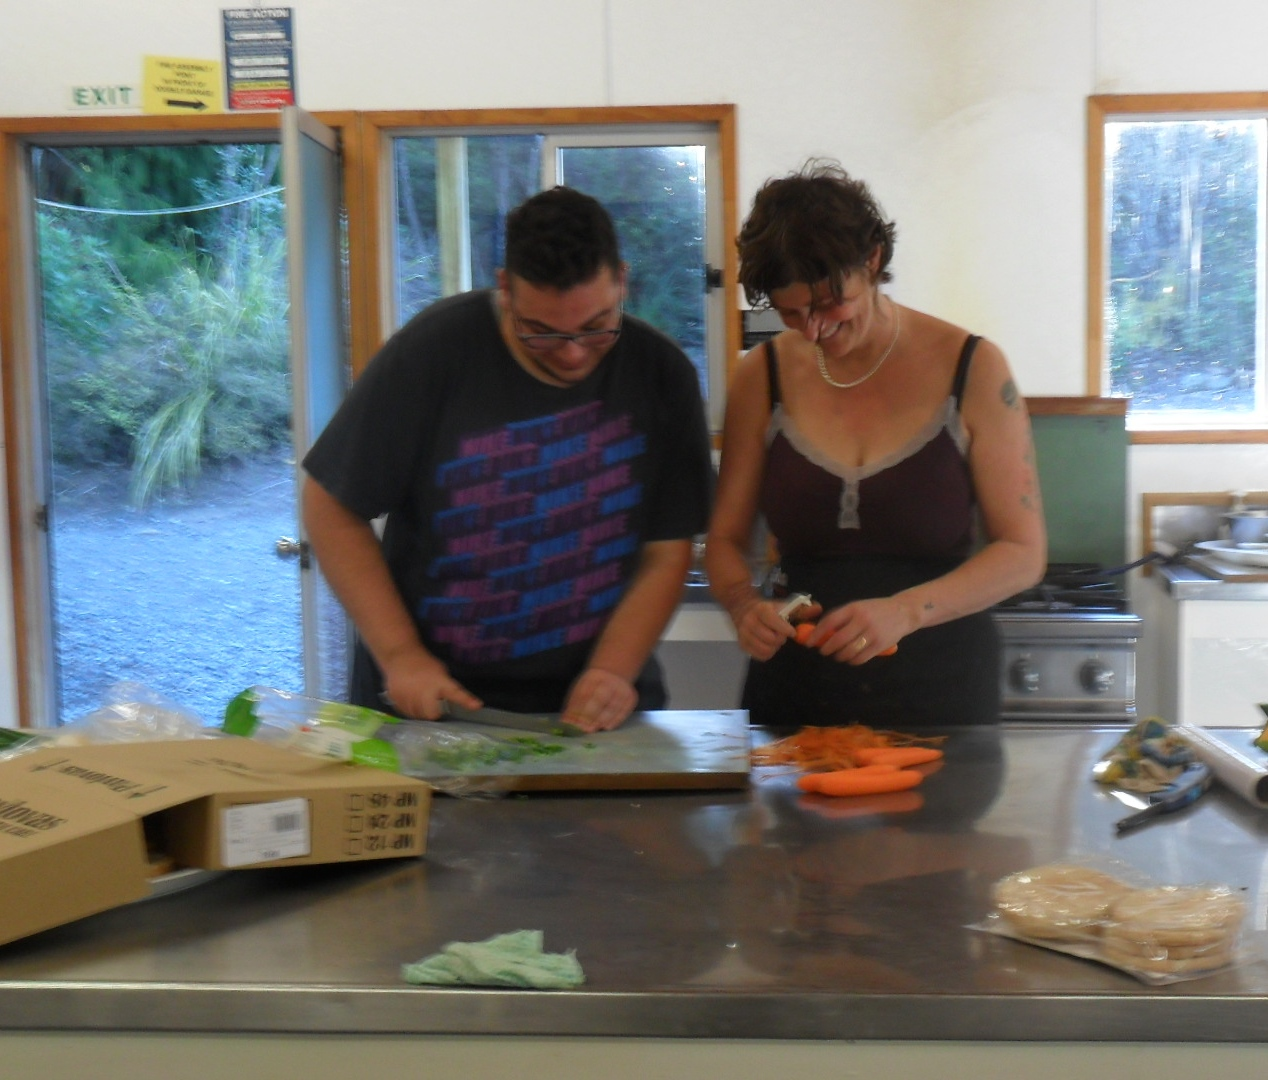 Jennifer and Wallid cooking up a storm